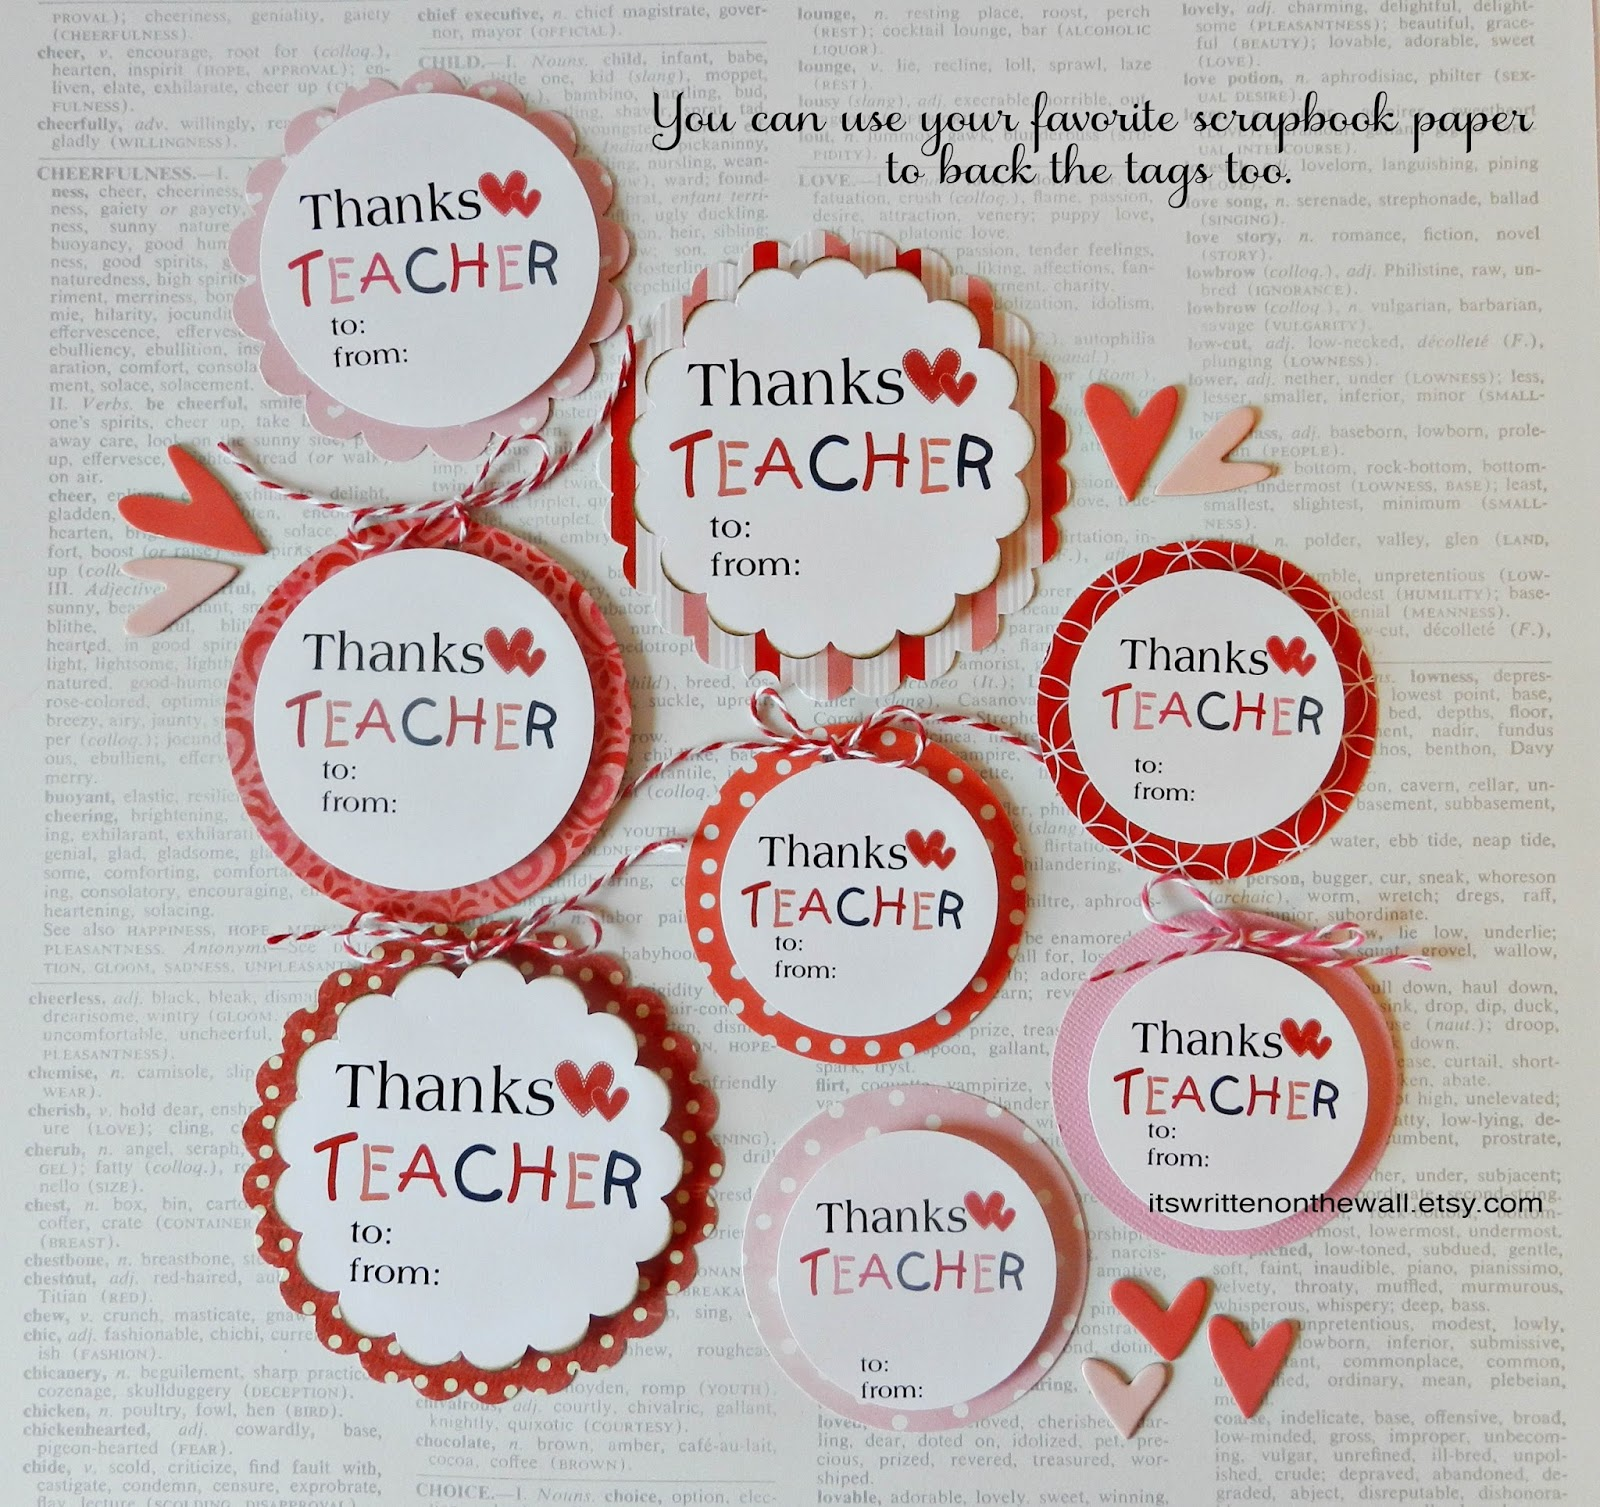 Scrapbook ideas for teachers - If You Would Rather Use Other Scrapbook Paper Behind The Tags They Will Look Great Too Above Are Just Some Samples Of Our Favorite Paper Backing The Tags